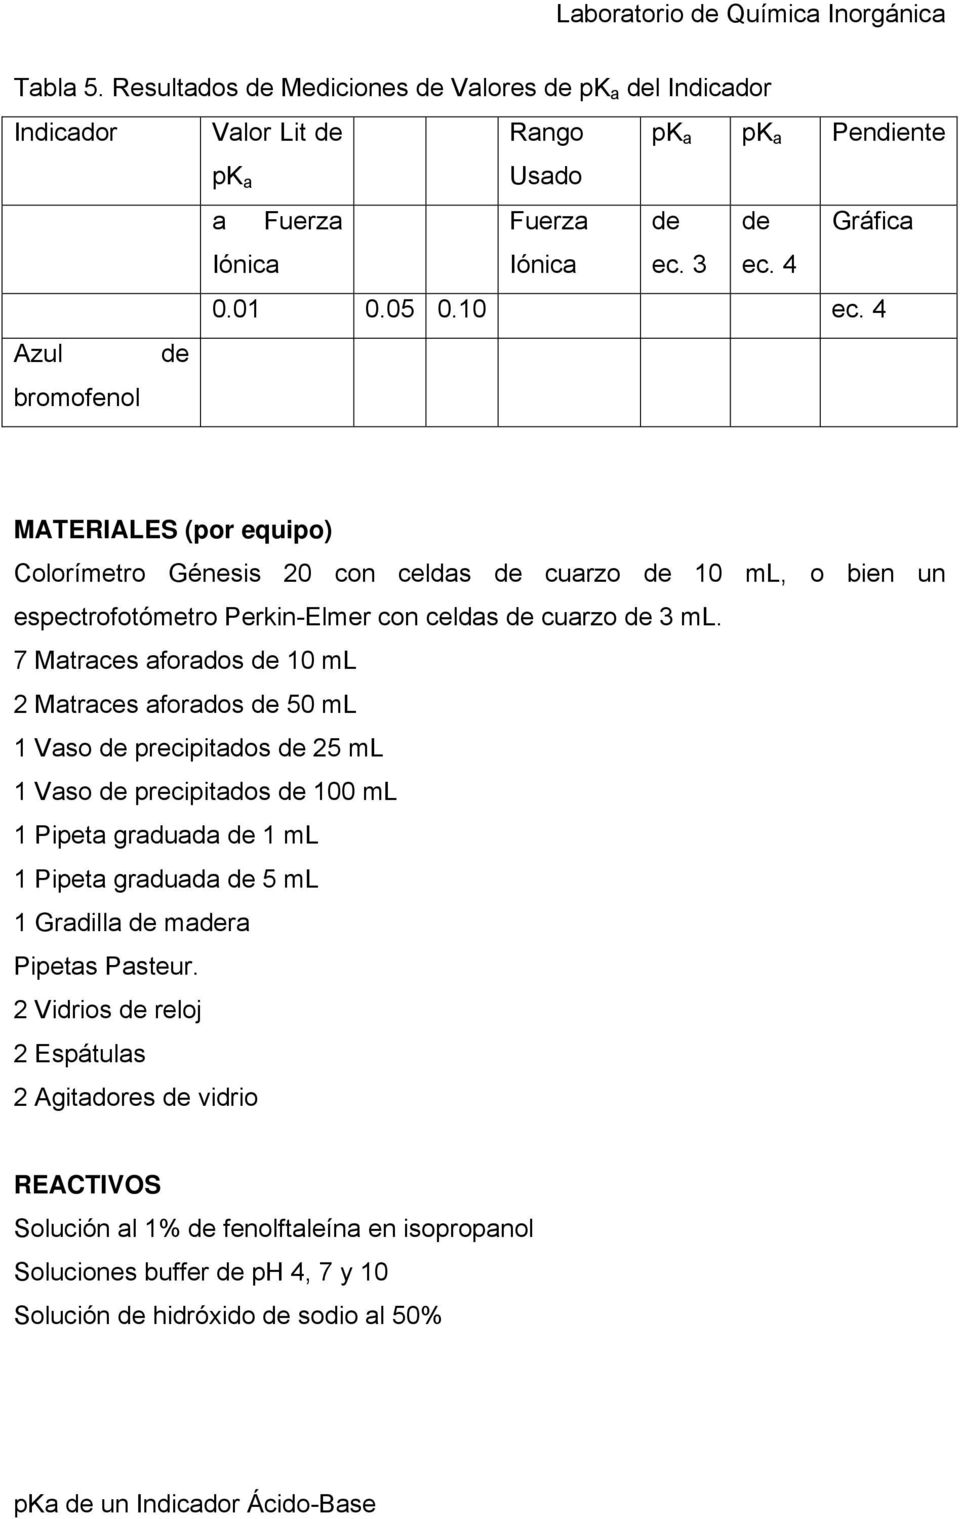 7 Matraces aforados de 10 ml 2 Matraces aforados de 50 ml 1 Vaso de precipitados de 25 ml 1 Vaso de precipitados de 100 ml 1 Pipeta graduada de 1 ml 1 Pipeta graduada de 5 ml 1 Gradilla de